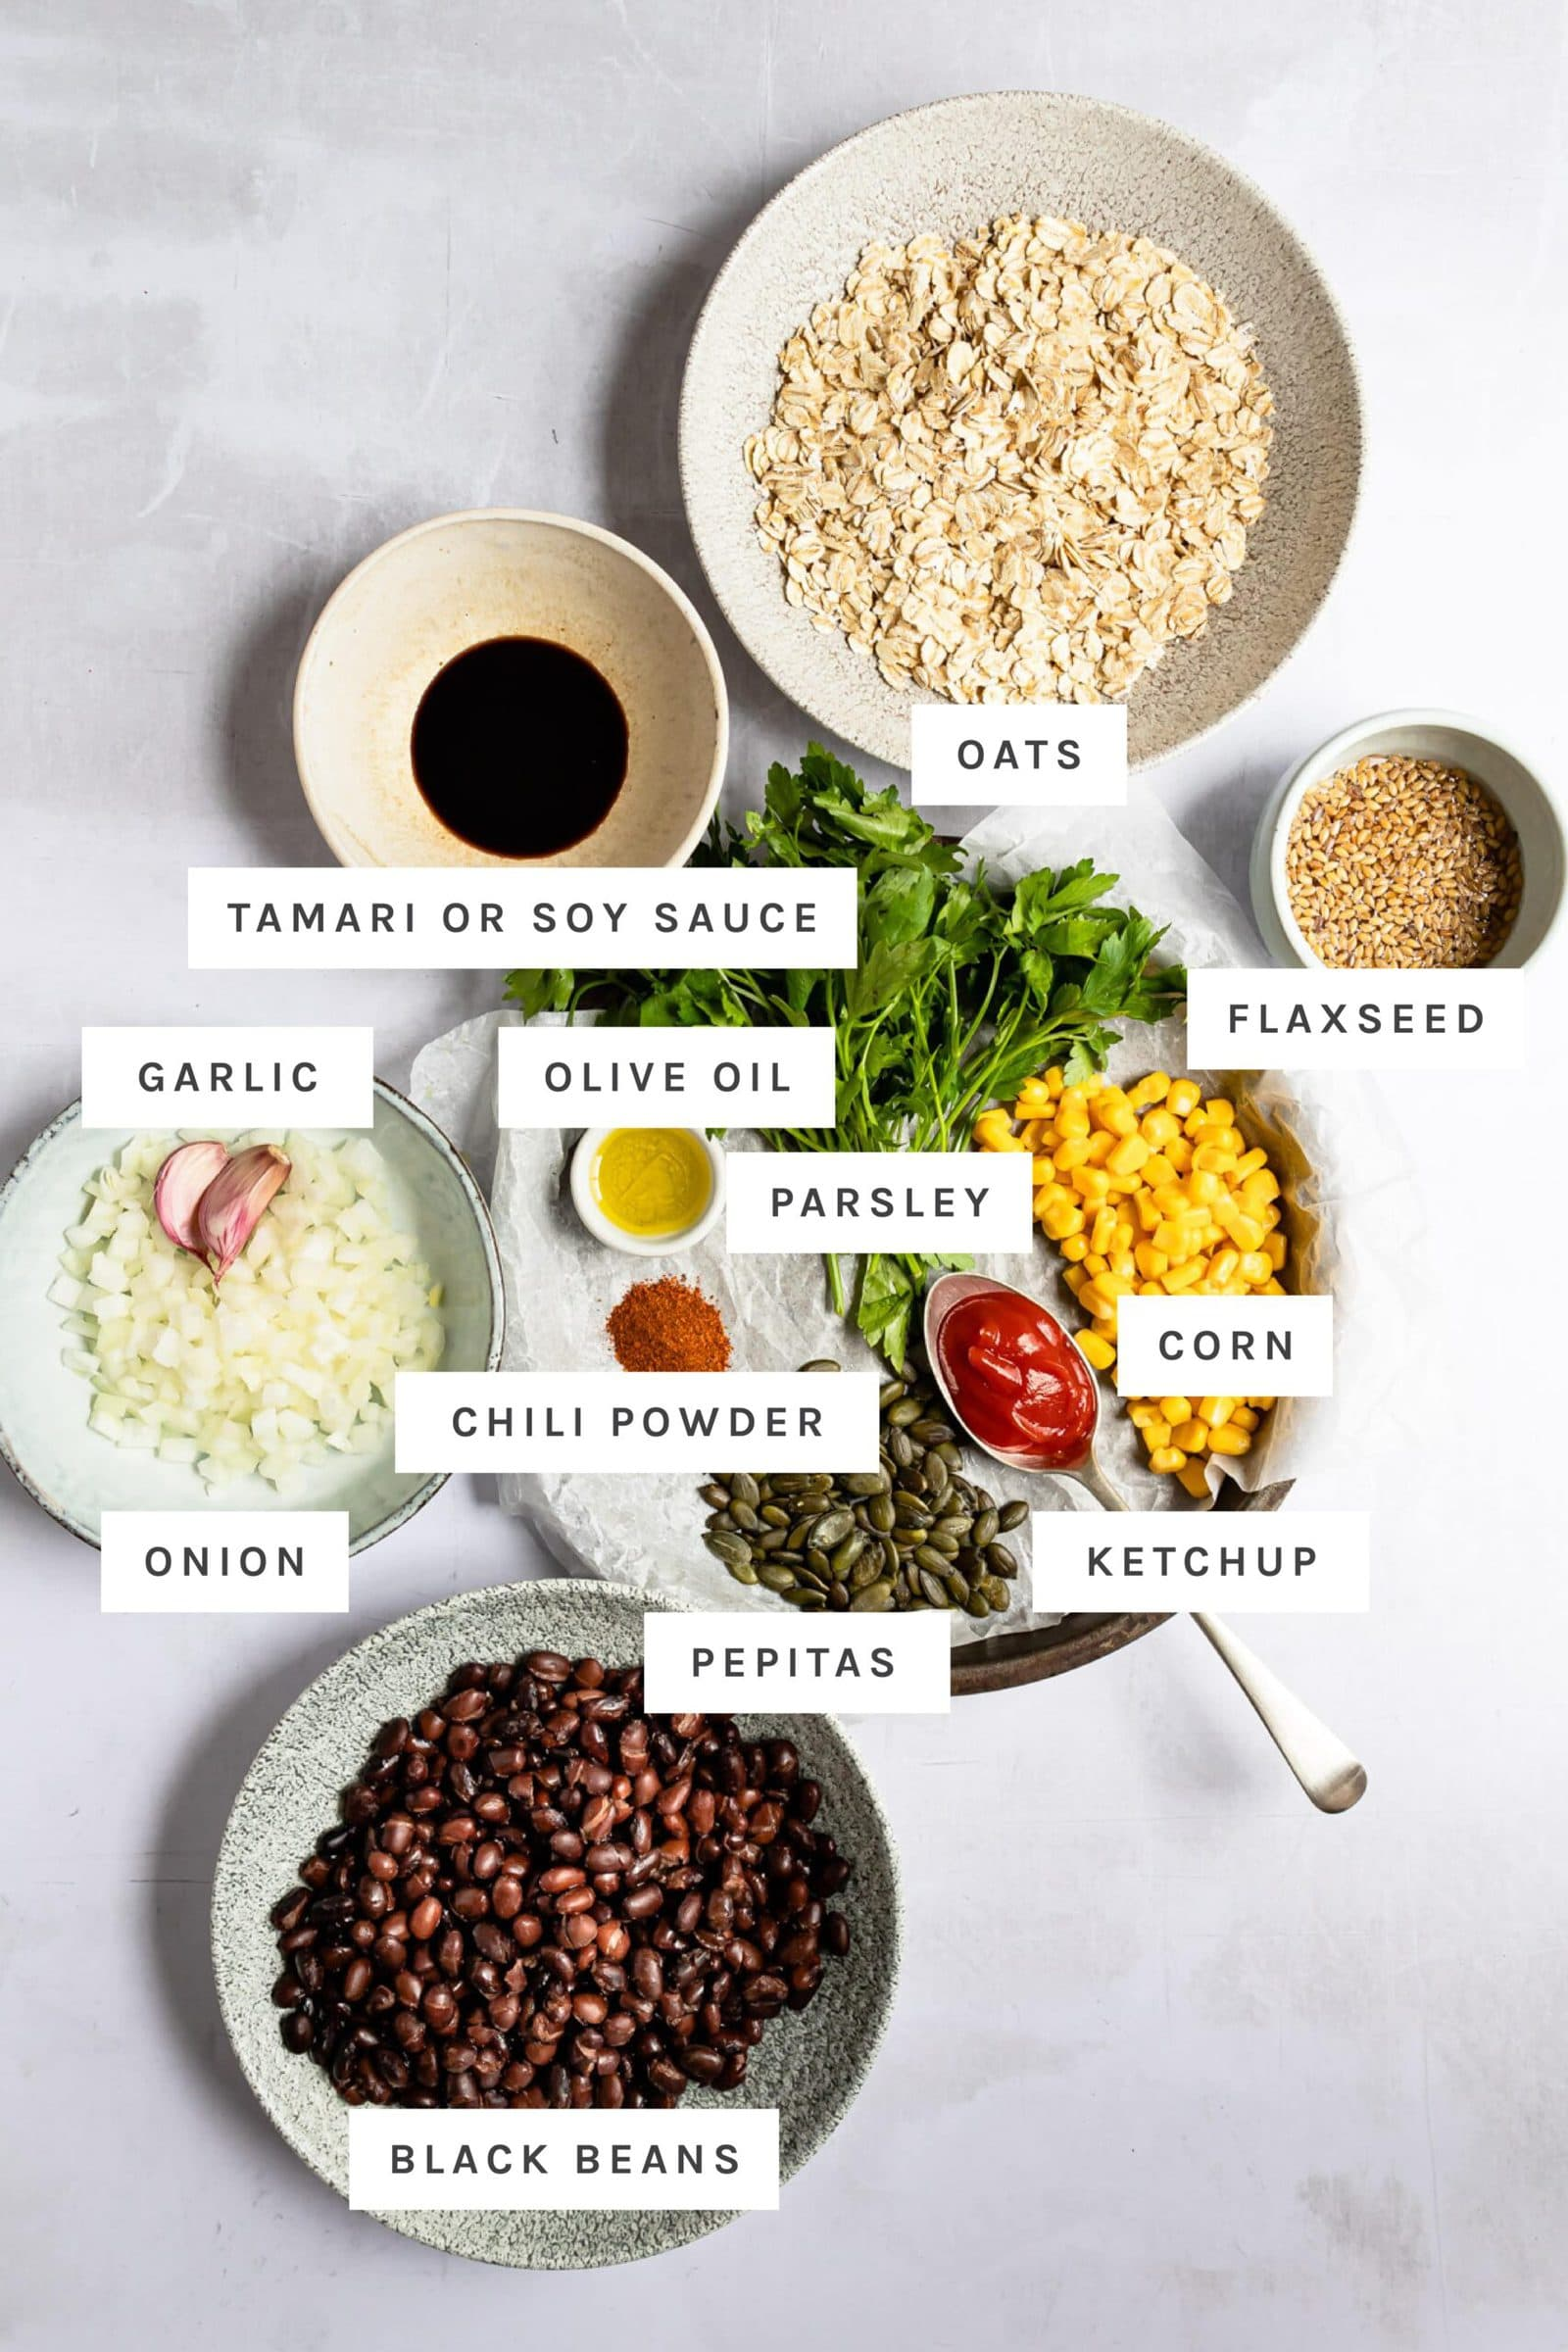 Ingredients to make black bean burgers with labels including beans, veggies, oats and spices.